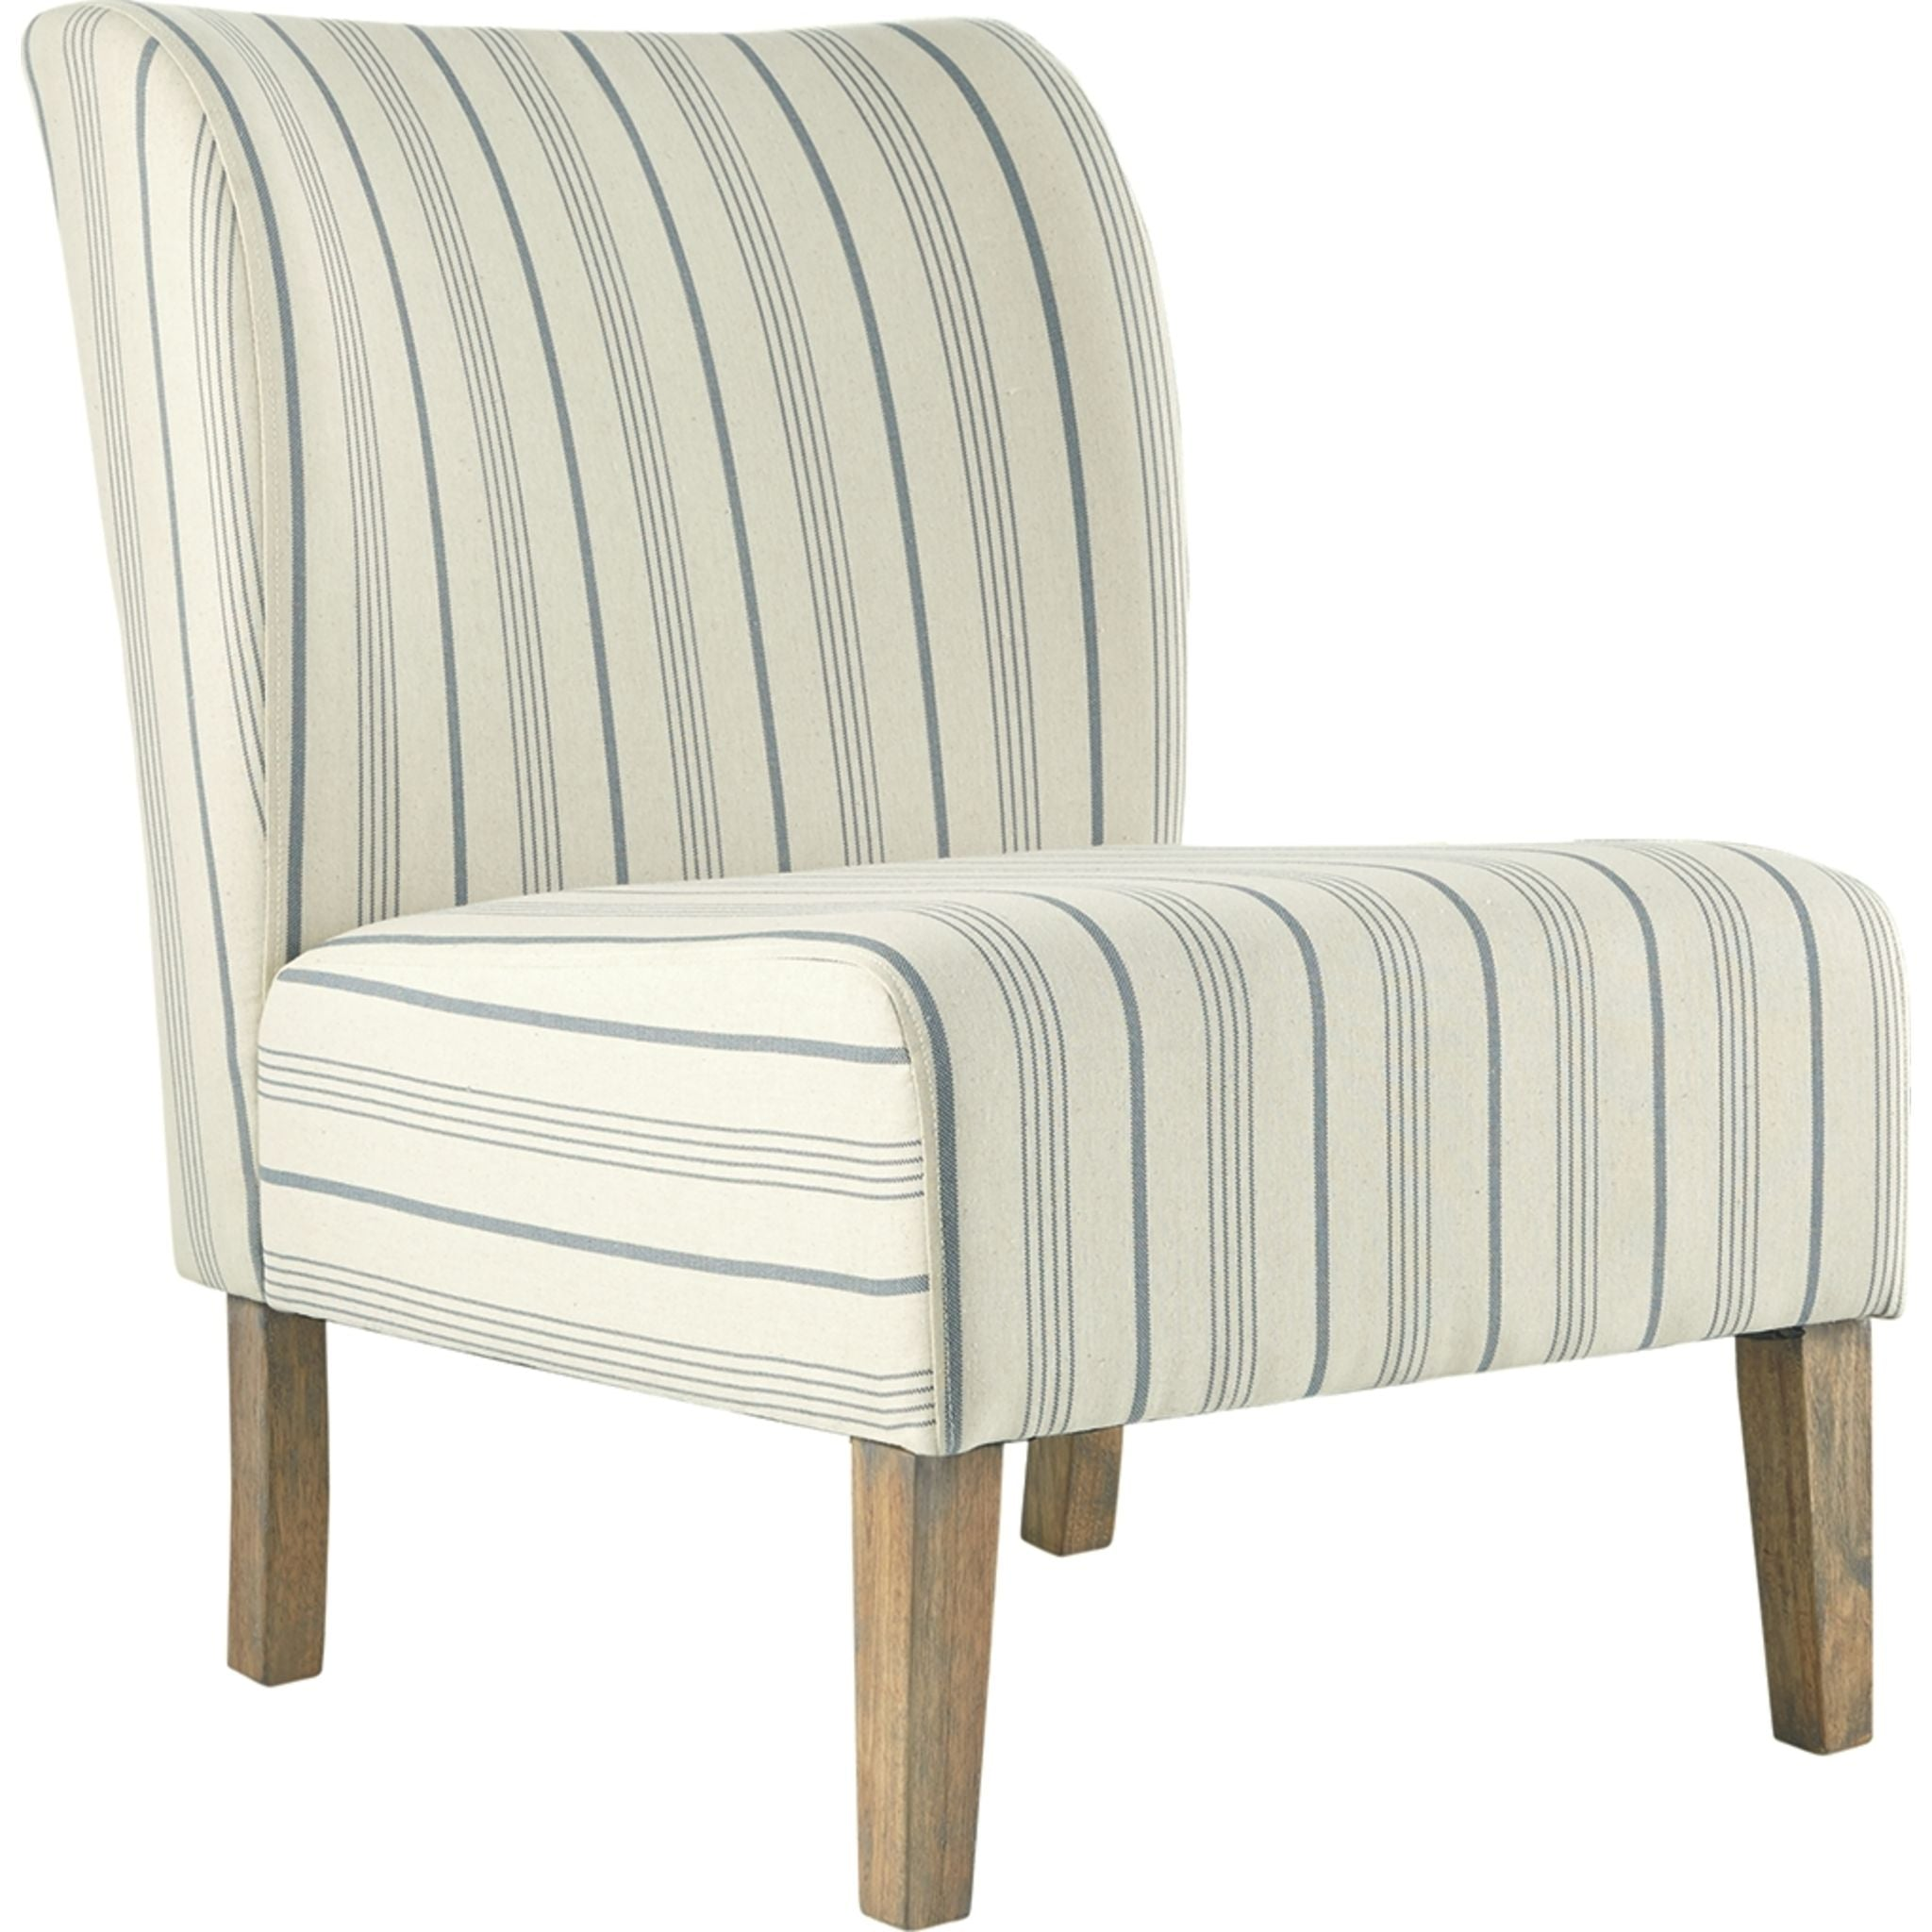 Triptis Accent Chair - Cream/Blue